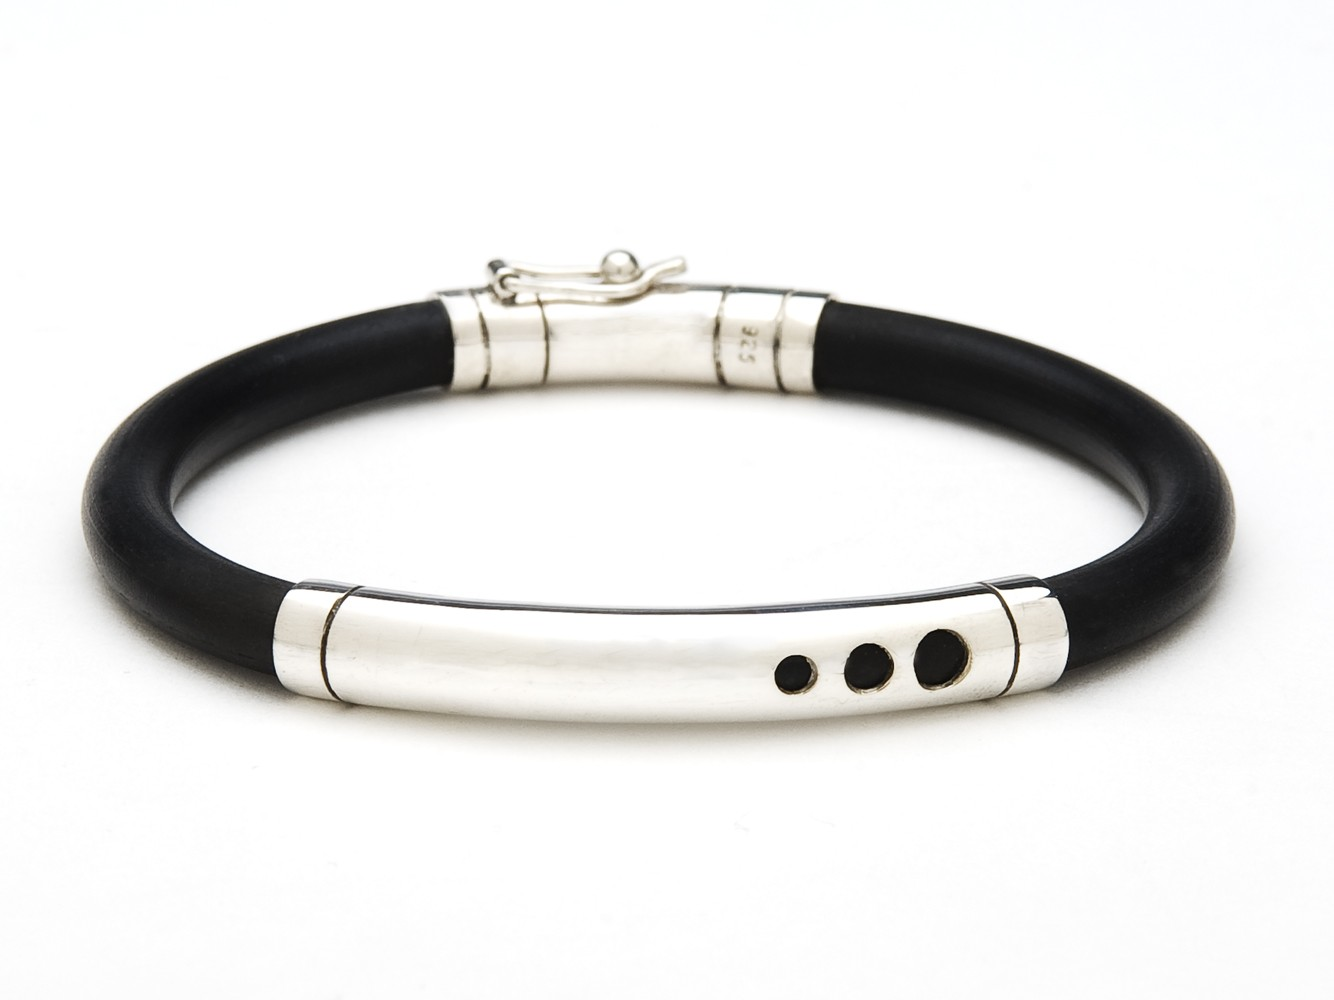 Rubber and Silver Bracelet From Indonesia